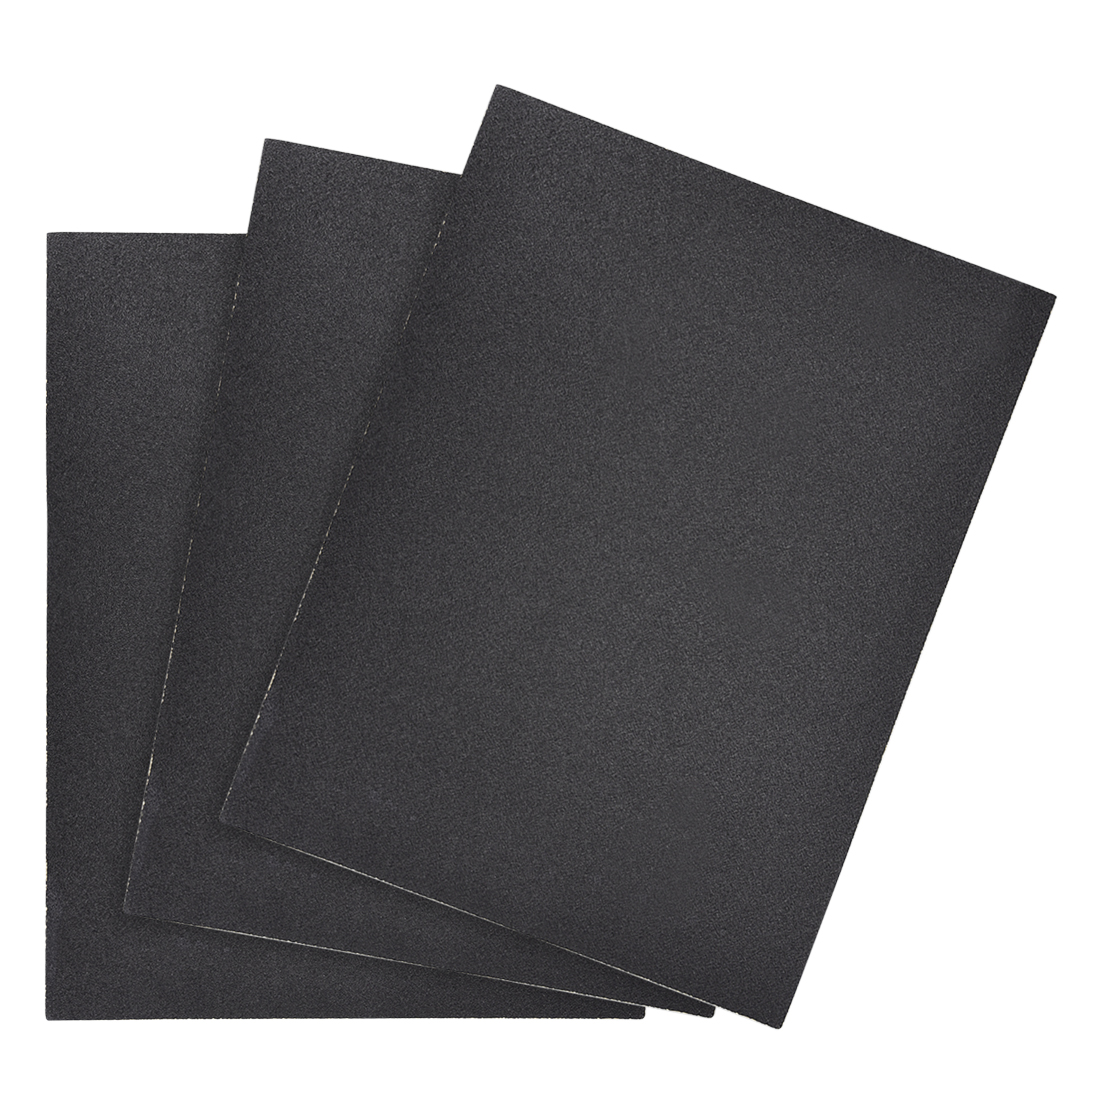 Waterproof Sandpaper, Wet Dry Sand Paper Grit of 150, 11 x 9inch 3pcs